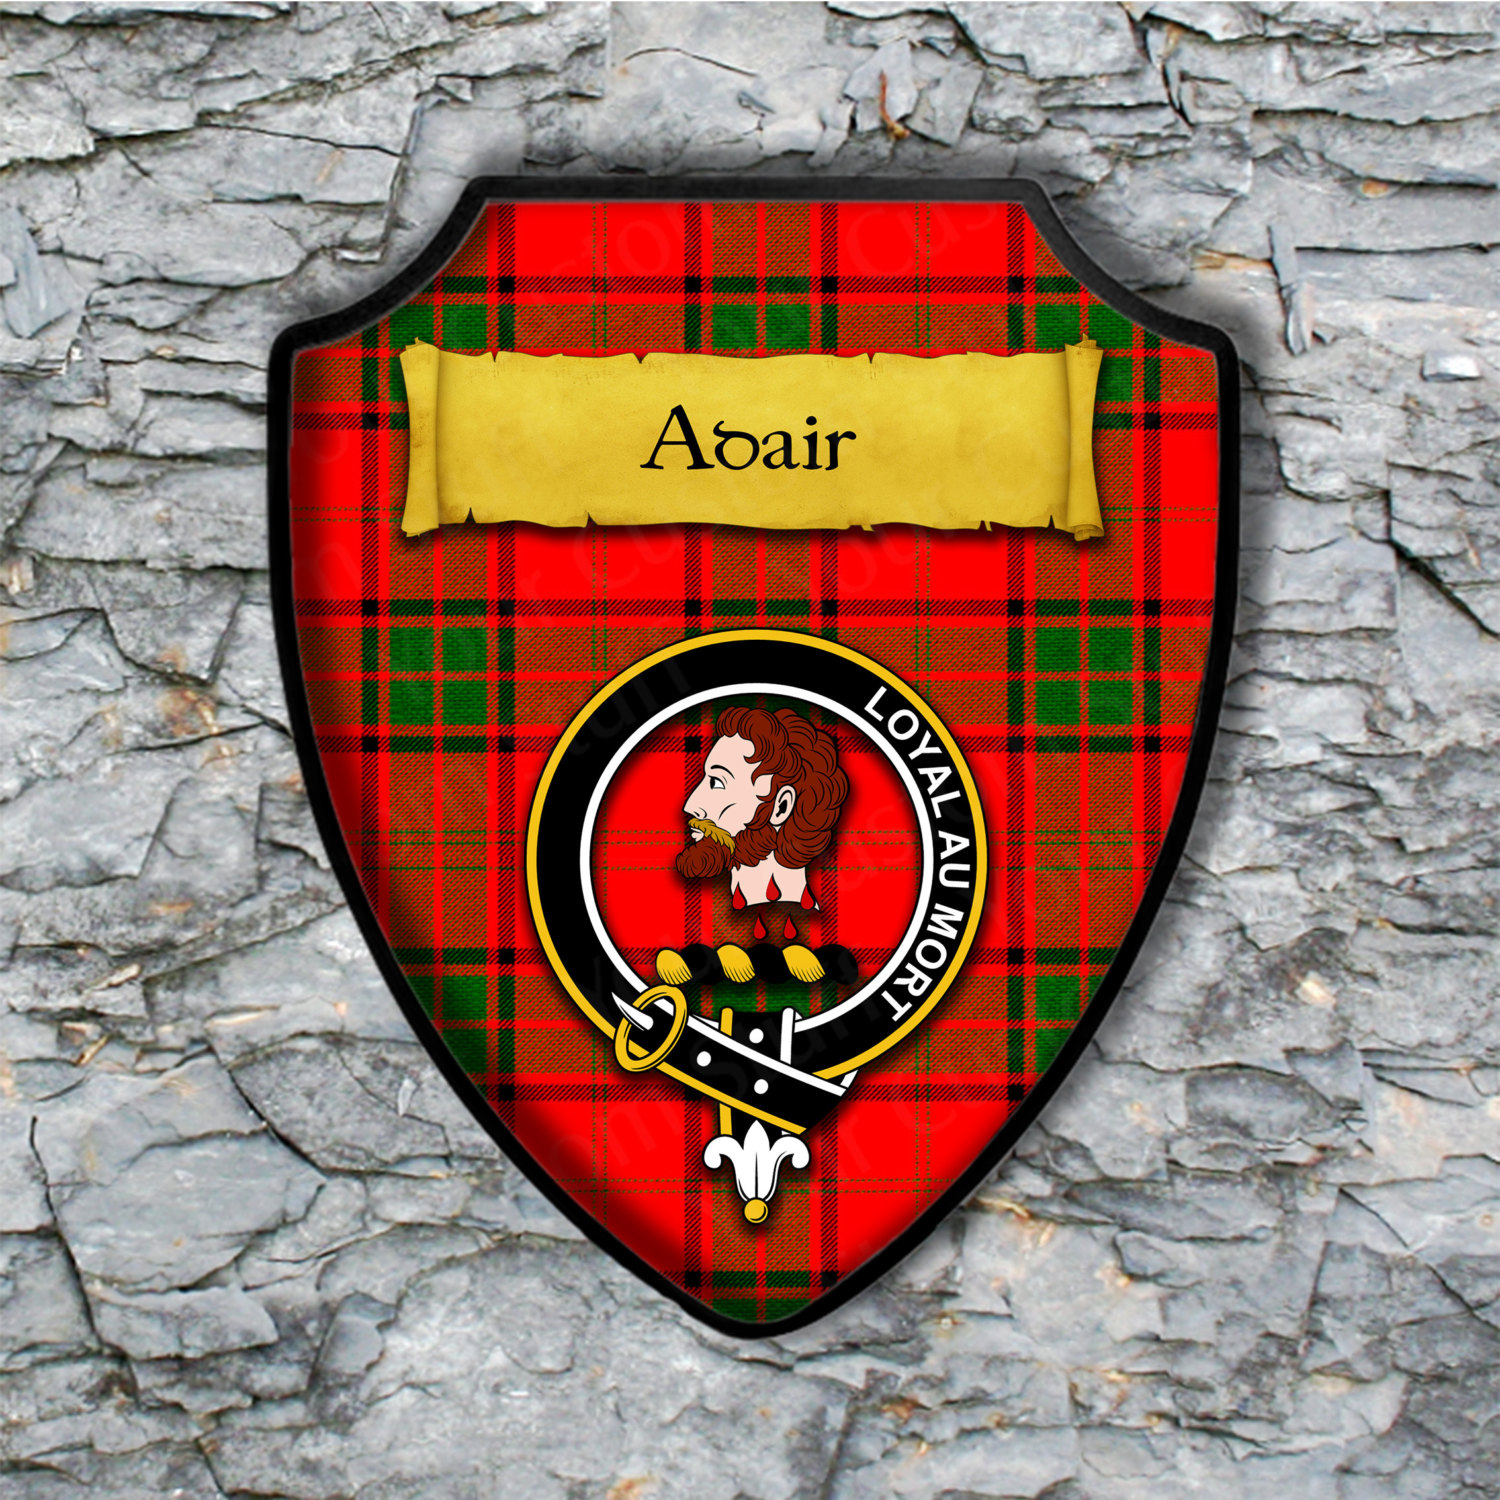 Adair Shield Plaque with Scottish Clan Coat of Arms Badge on Clan Plaid Tartan Background Wall Art